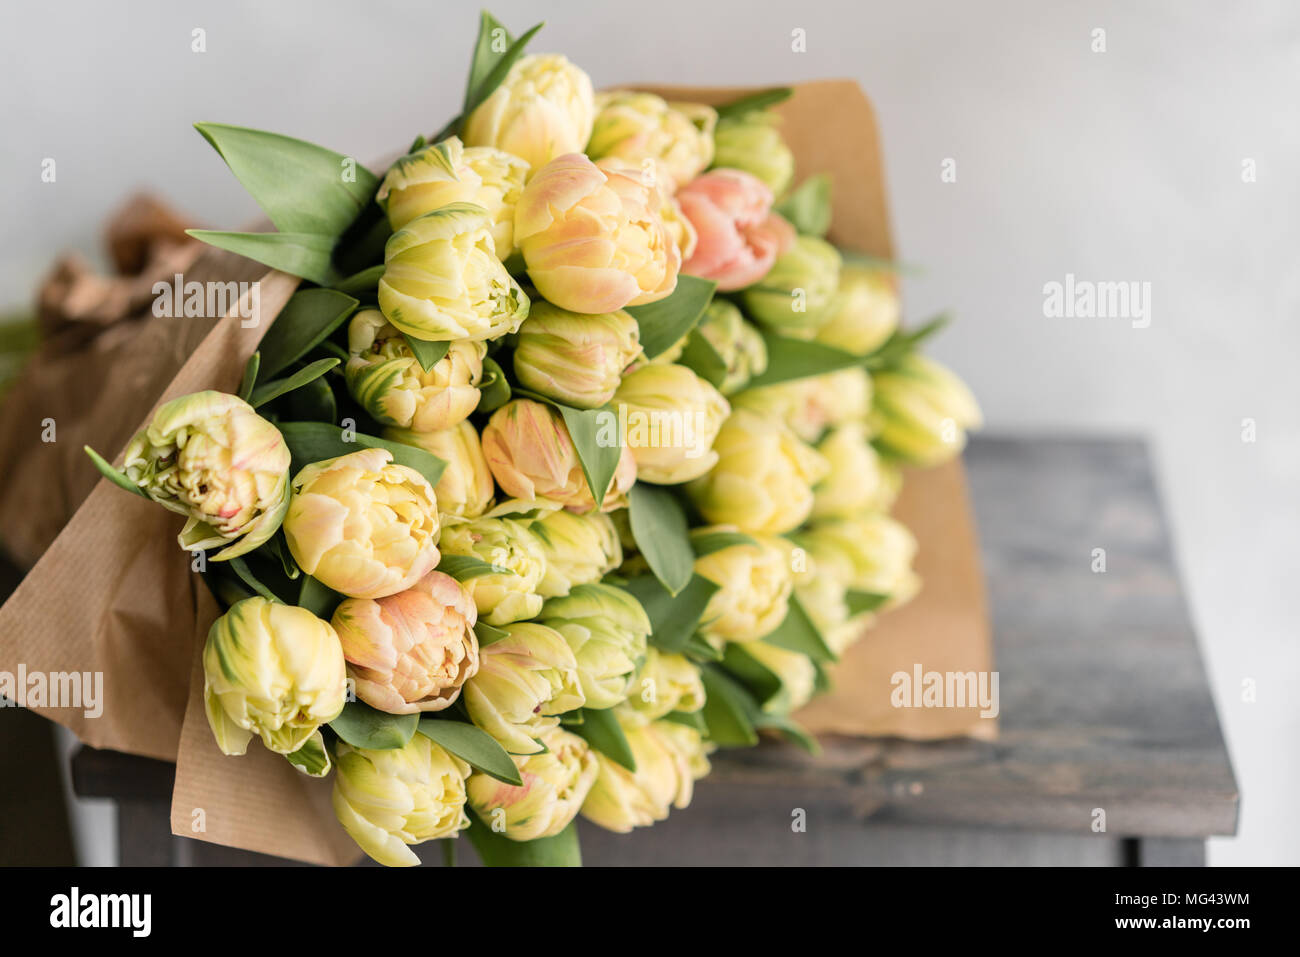 Tulips of pastel yellow color big buds floral natural backdrop tulips of pastel yellow color big buds floral natural backdrop unusual flowers unlike the others shallow focus wallpaper horizontal photo mightylinksfo